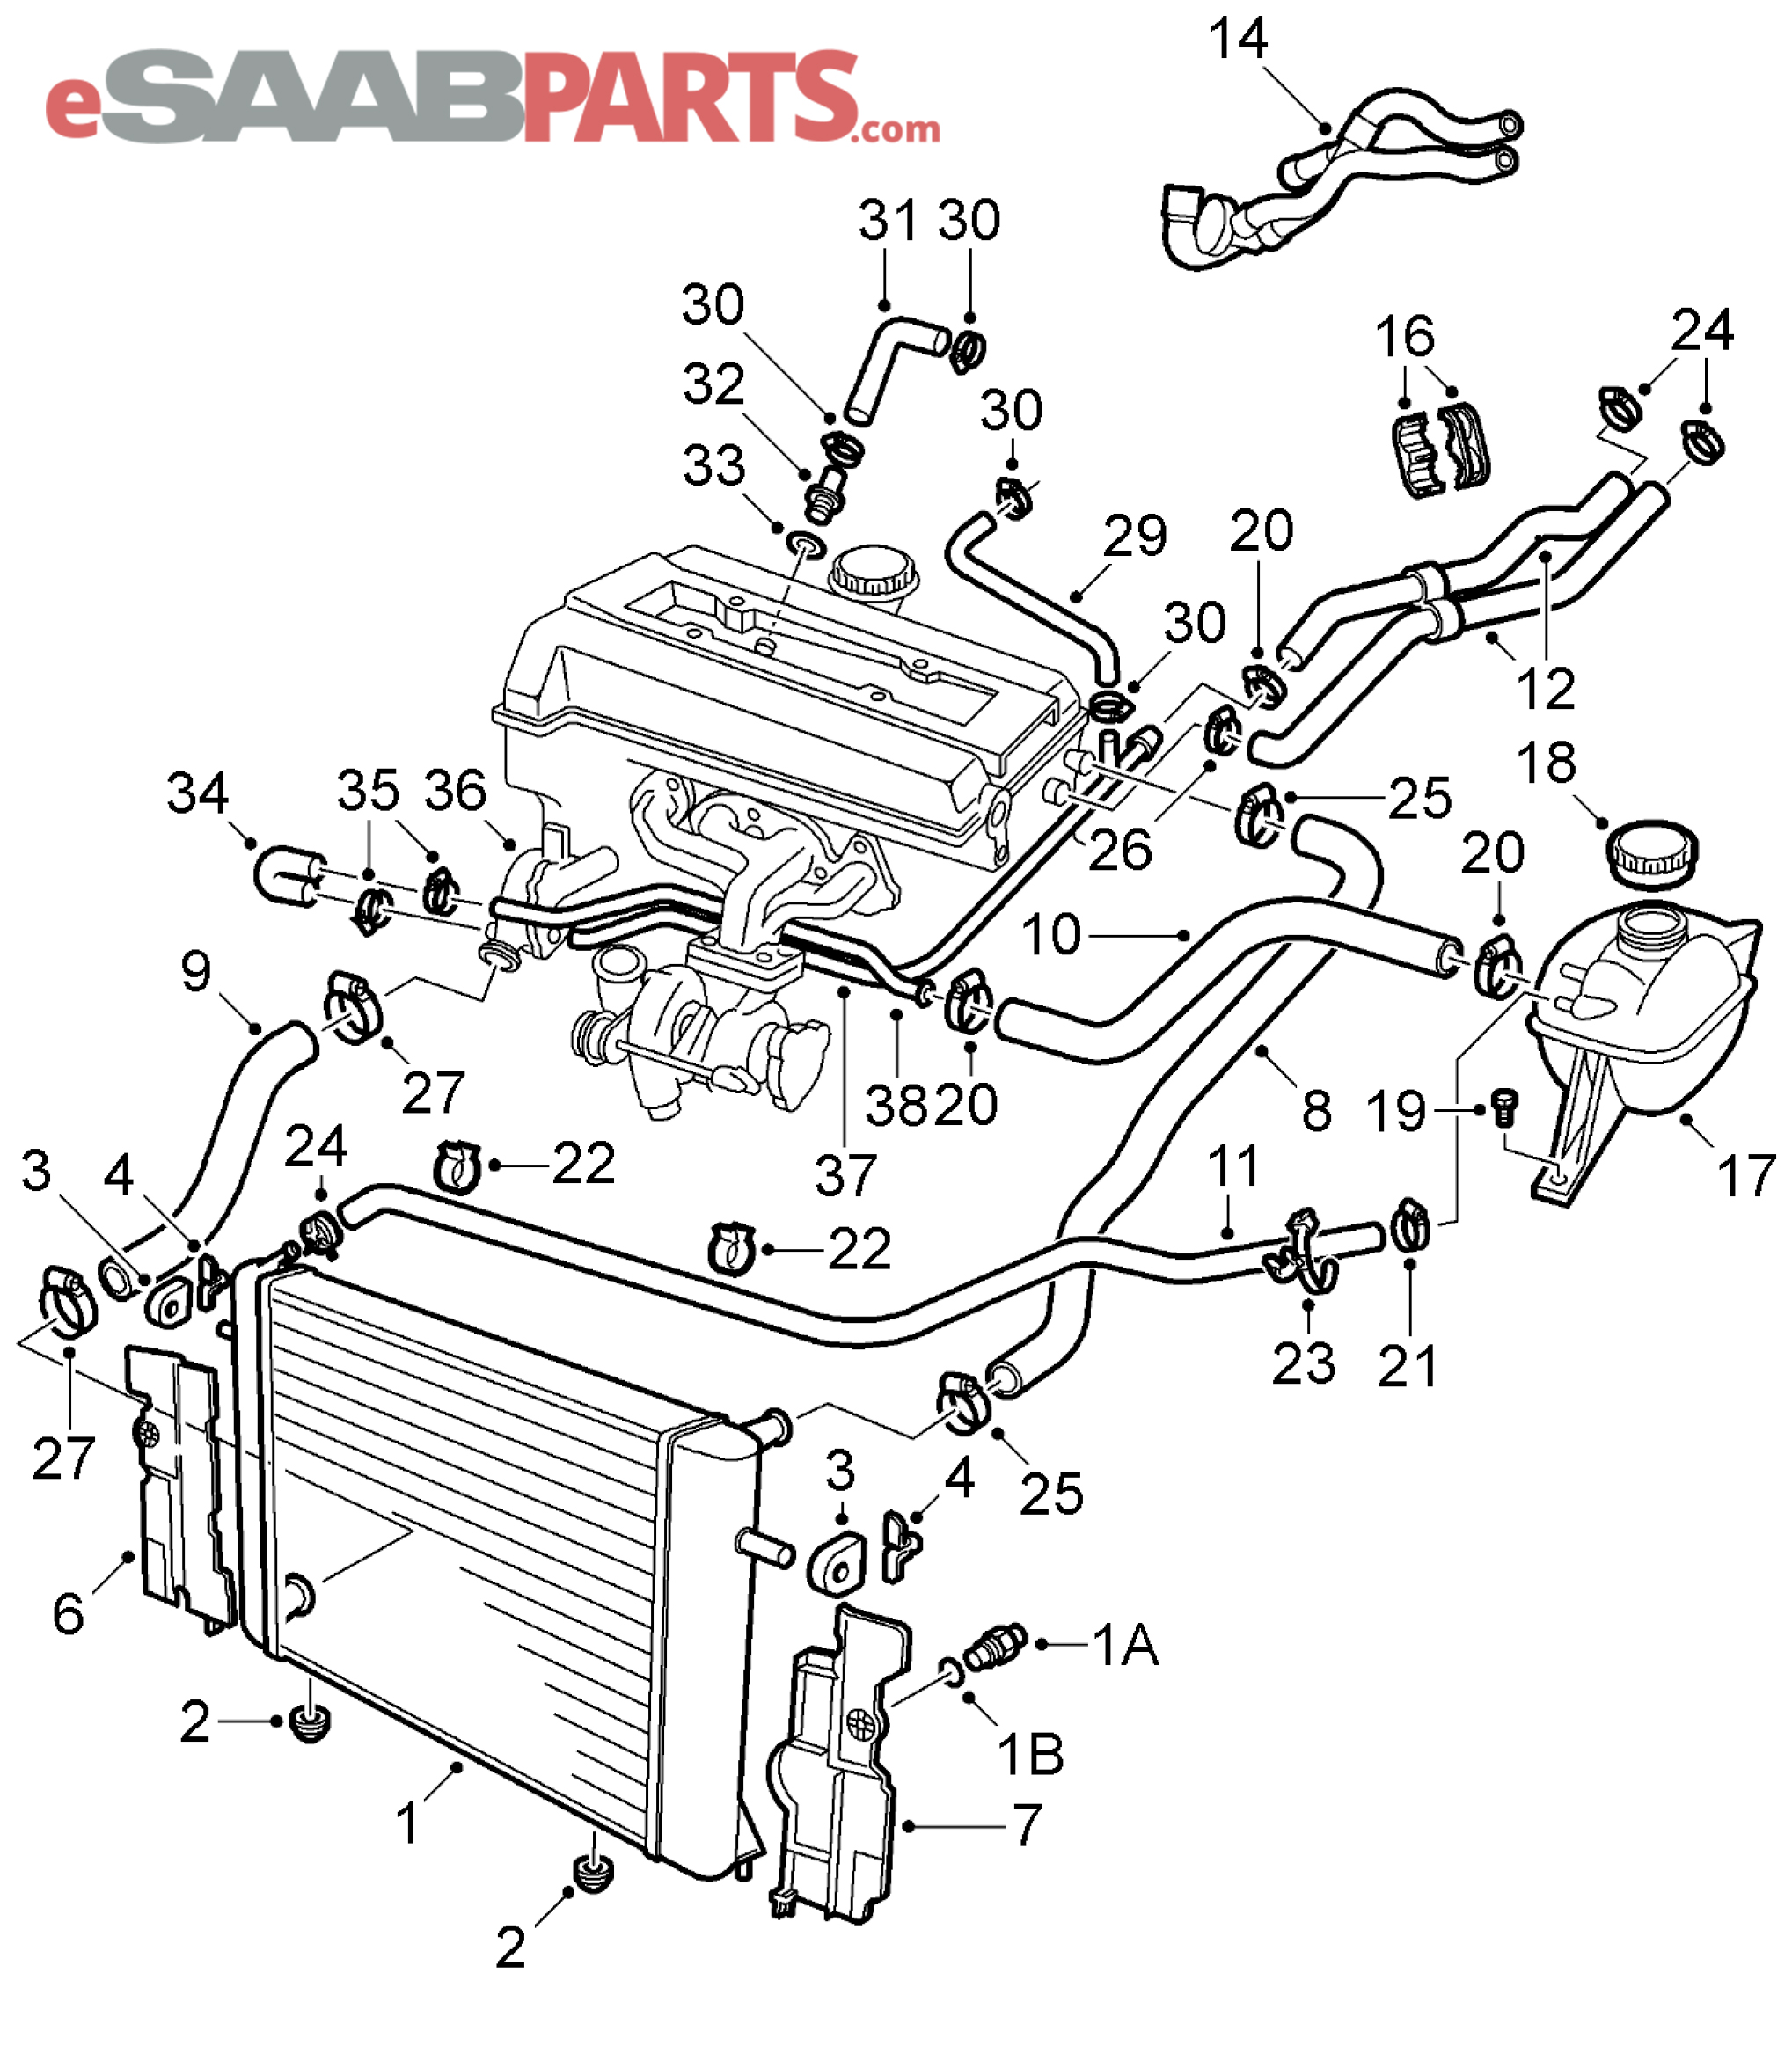 wiring diagram for 1995 ford mustang wiring diagram for